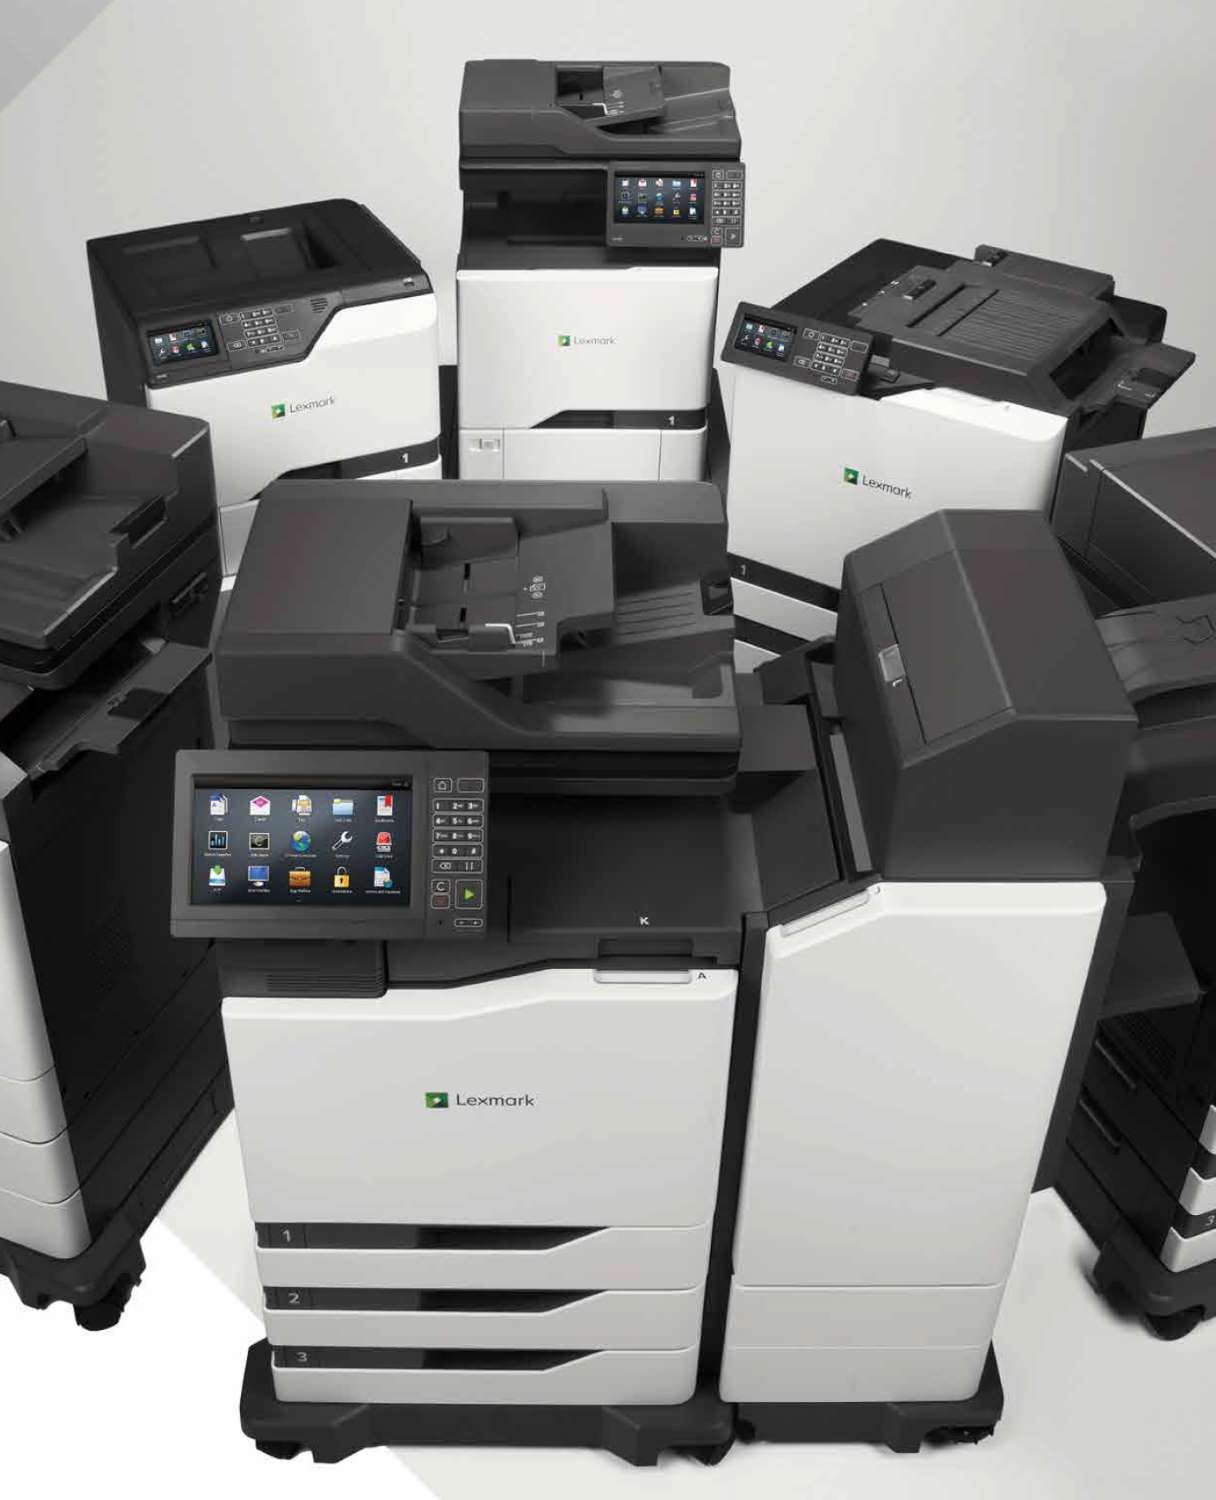 Tech4 Office Equipment in Carlisle, suppliers of photocopiers for lease or sale to businesses across Cumbria & the Borders